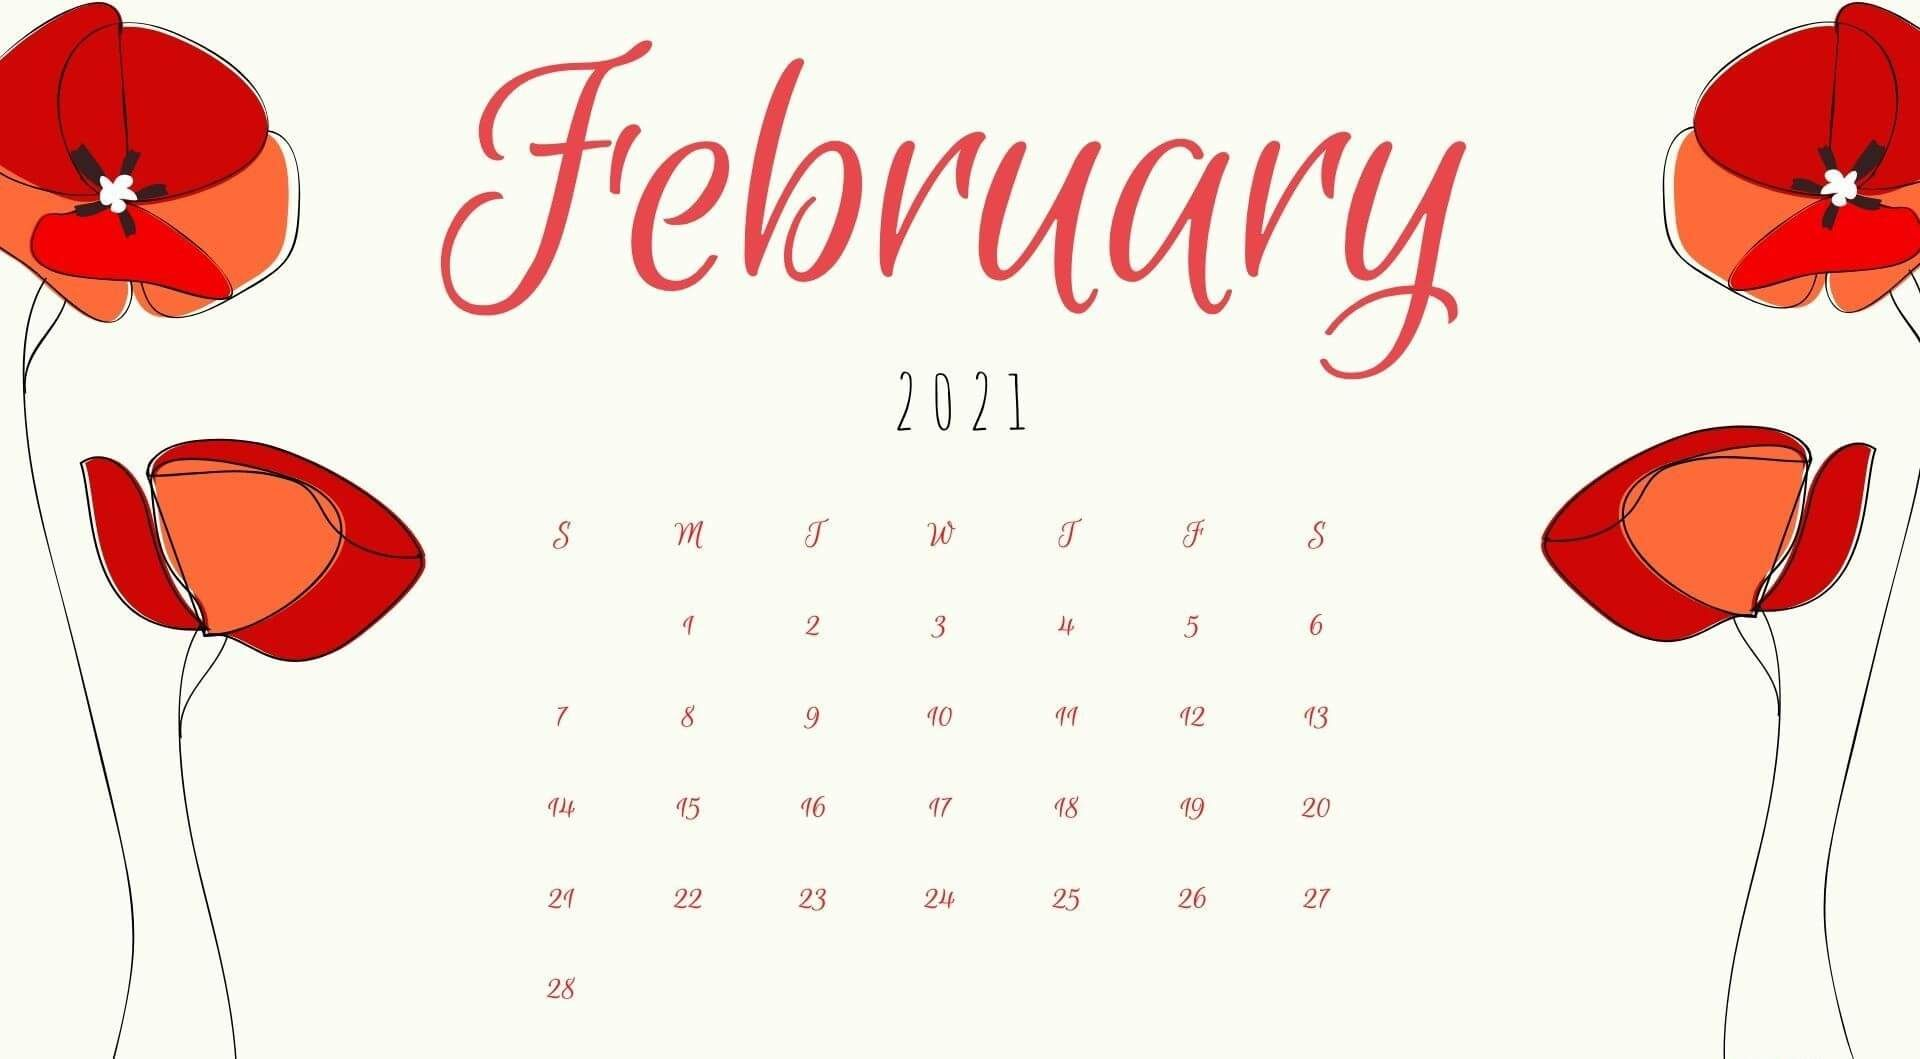 February 2021 Calendar HD Wallpaper Calendar wallpaper 2021